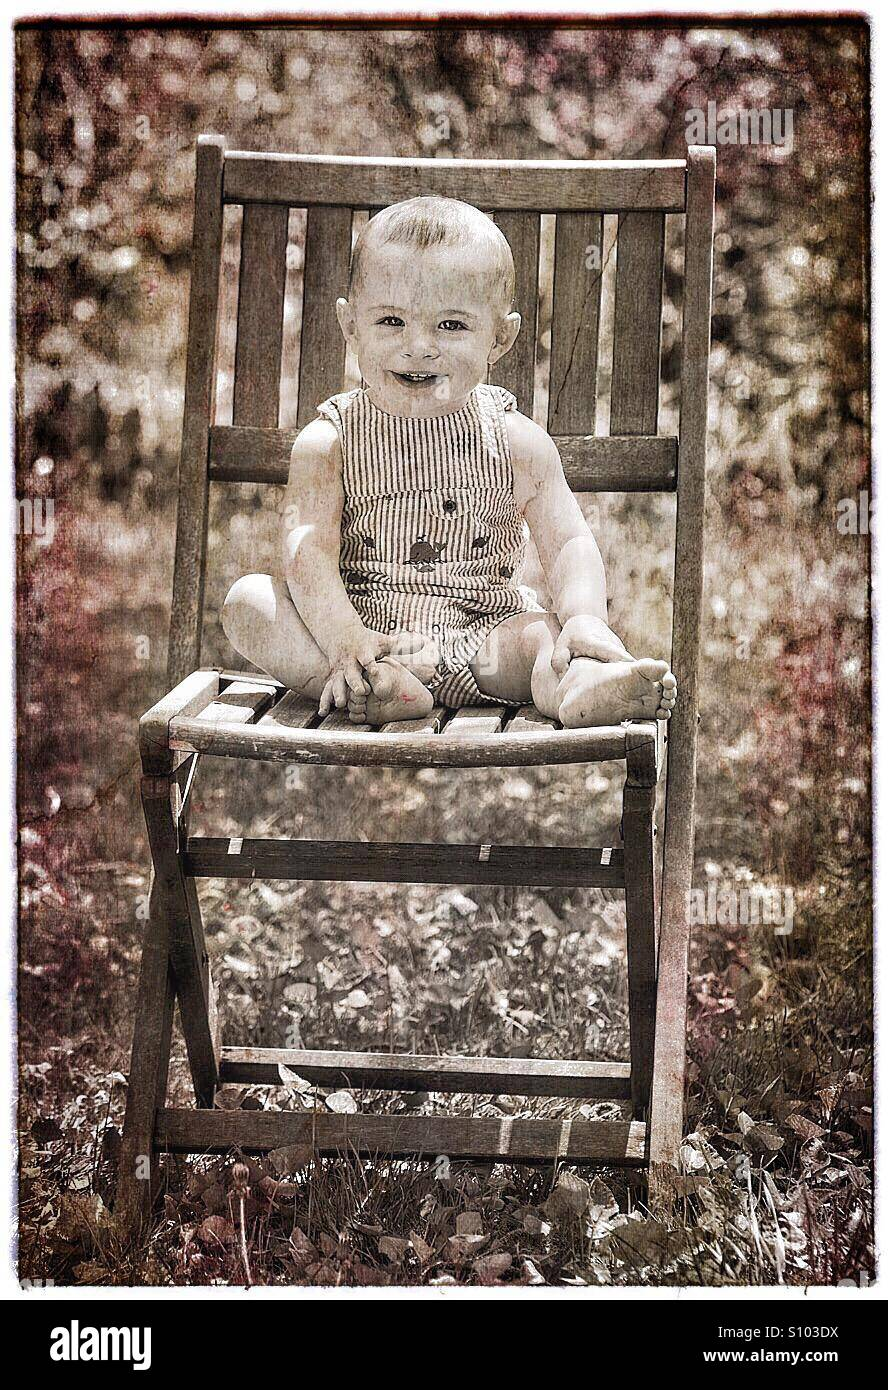 Baby with big smile sitting on chair outside. - Stock Image